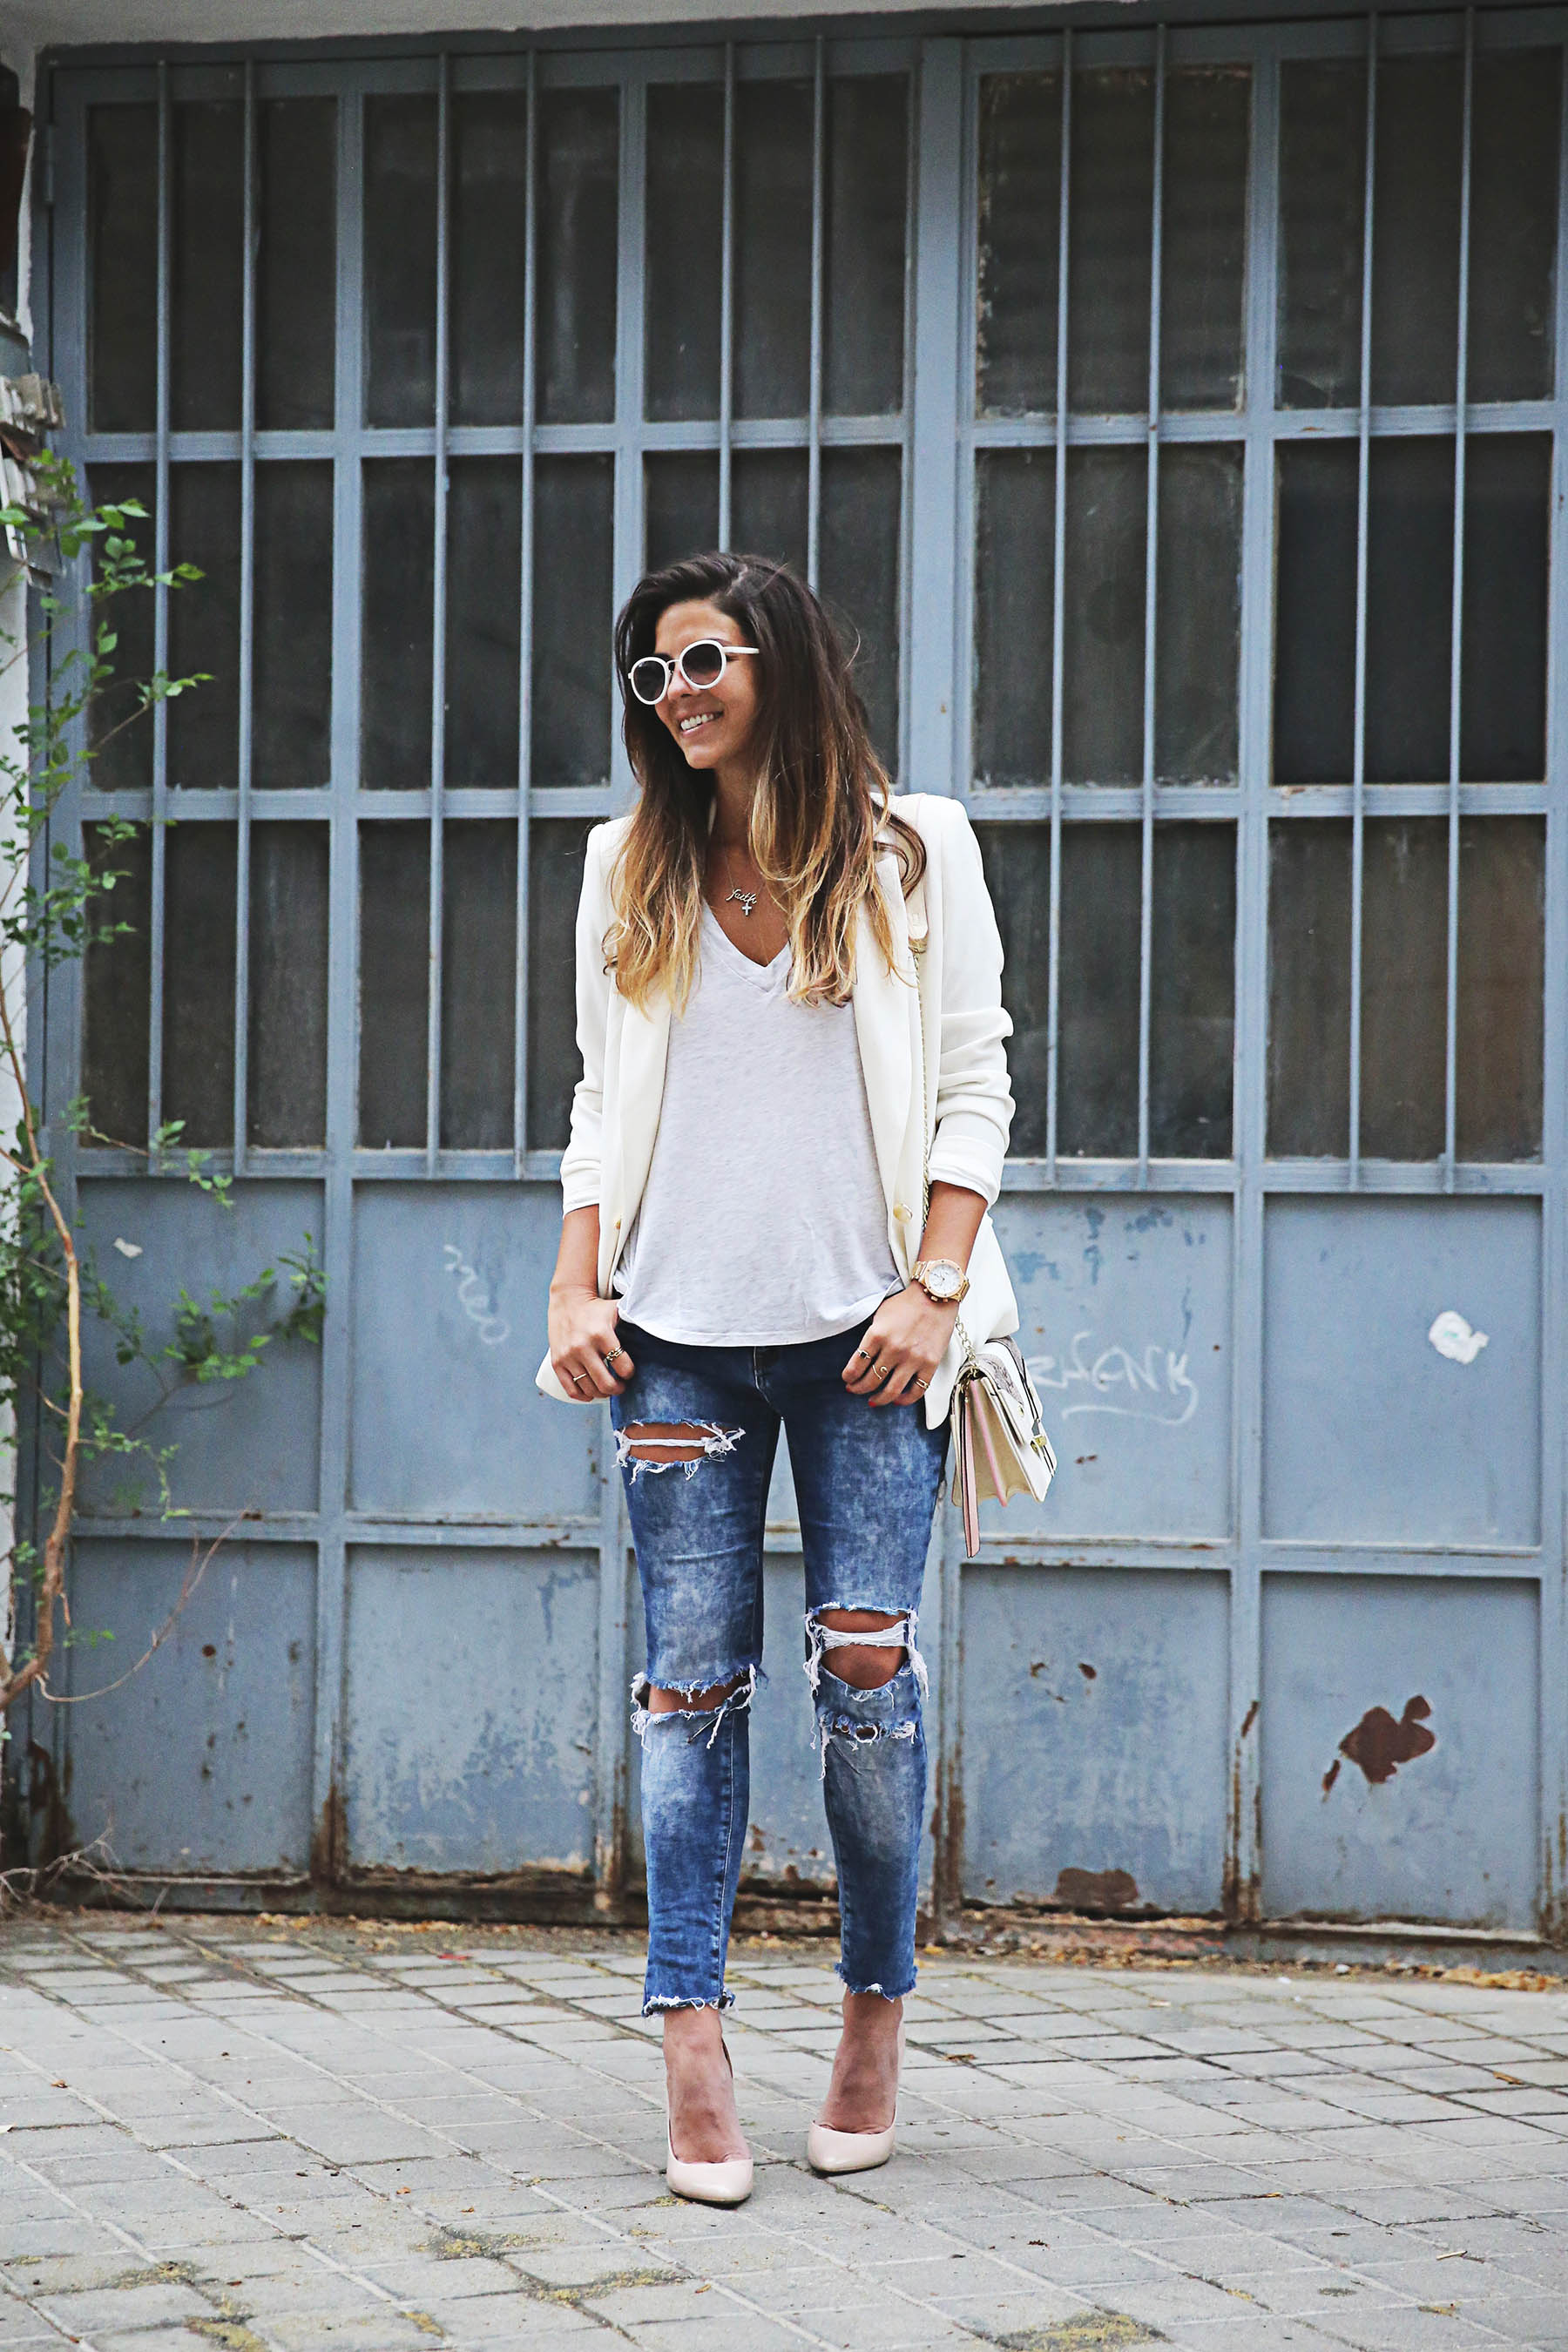 Street Style, May 2015: Natalia Cabezas is wearing a creme blazer and distressed denim jeans from Suite Blanco, a V-neck Zara t-shirt and nude Steve Madden heels